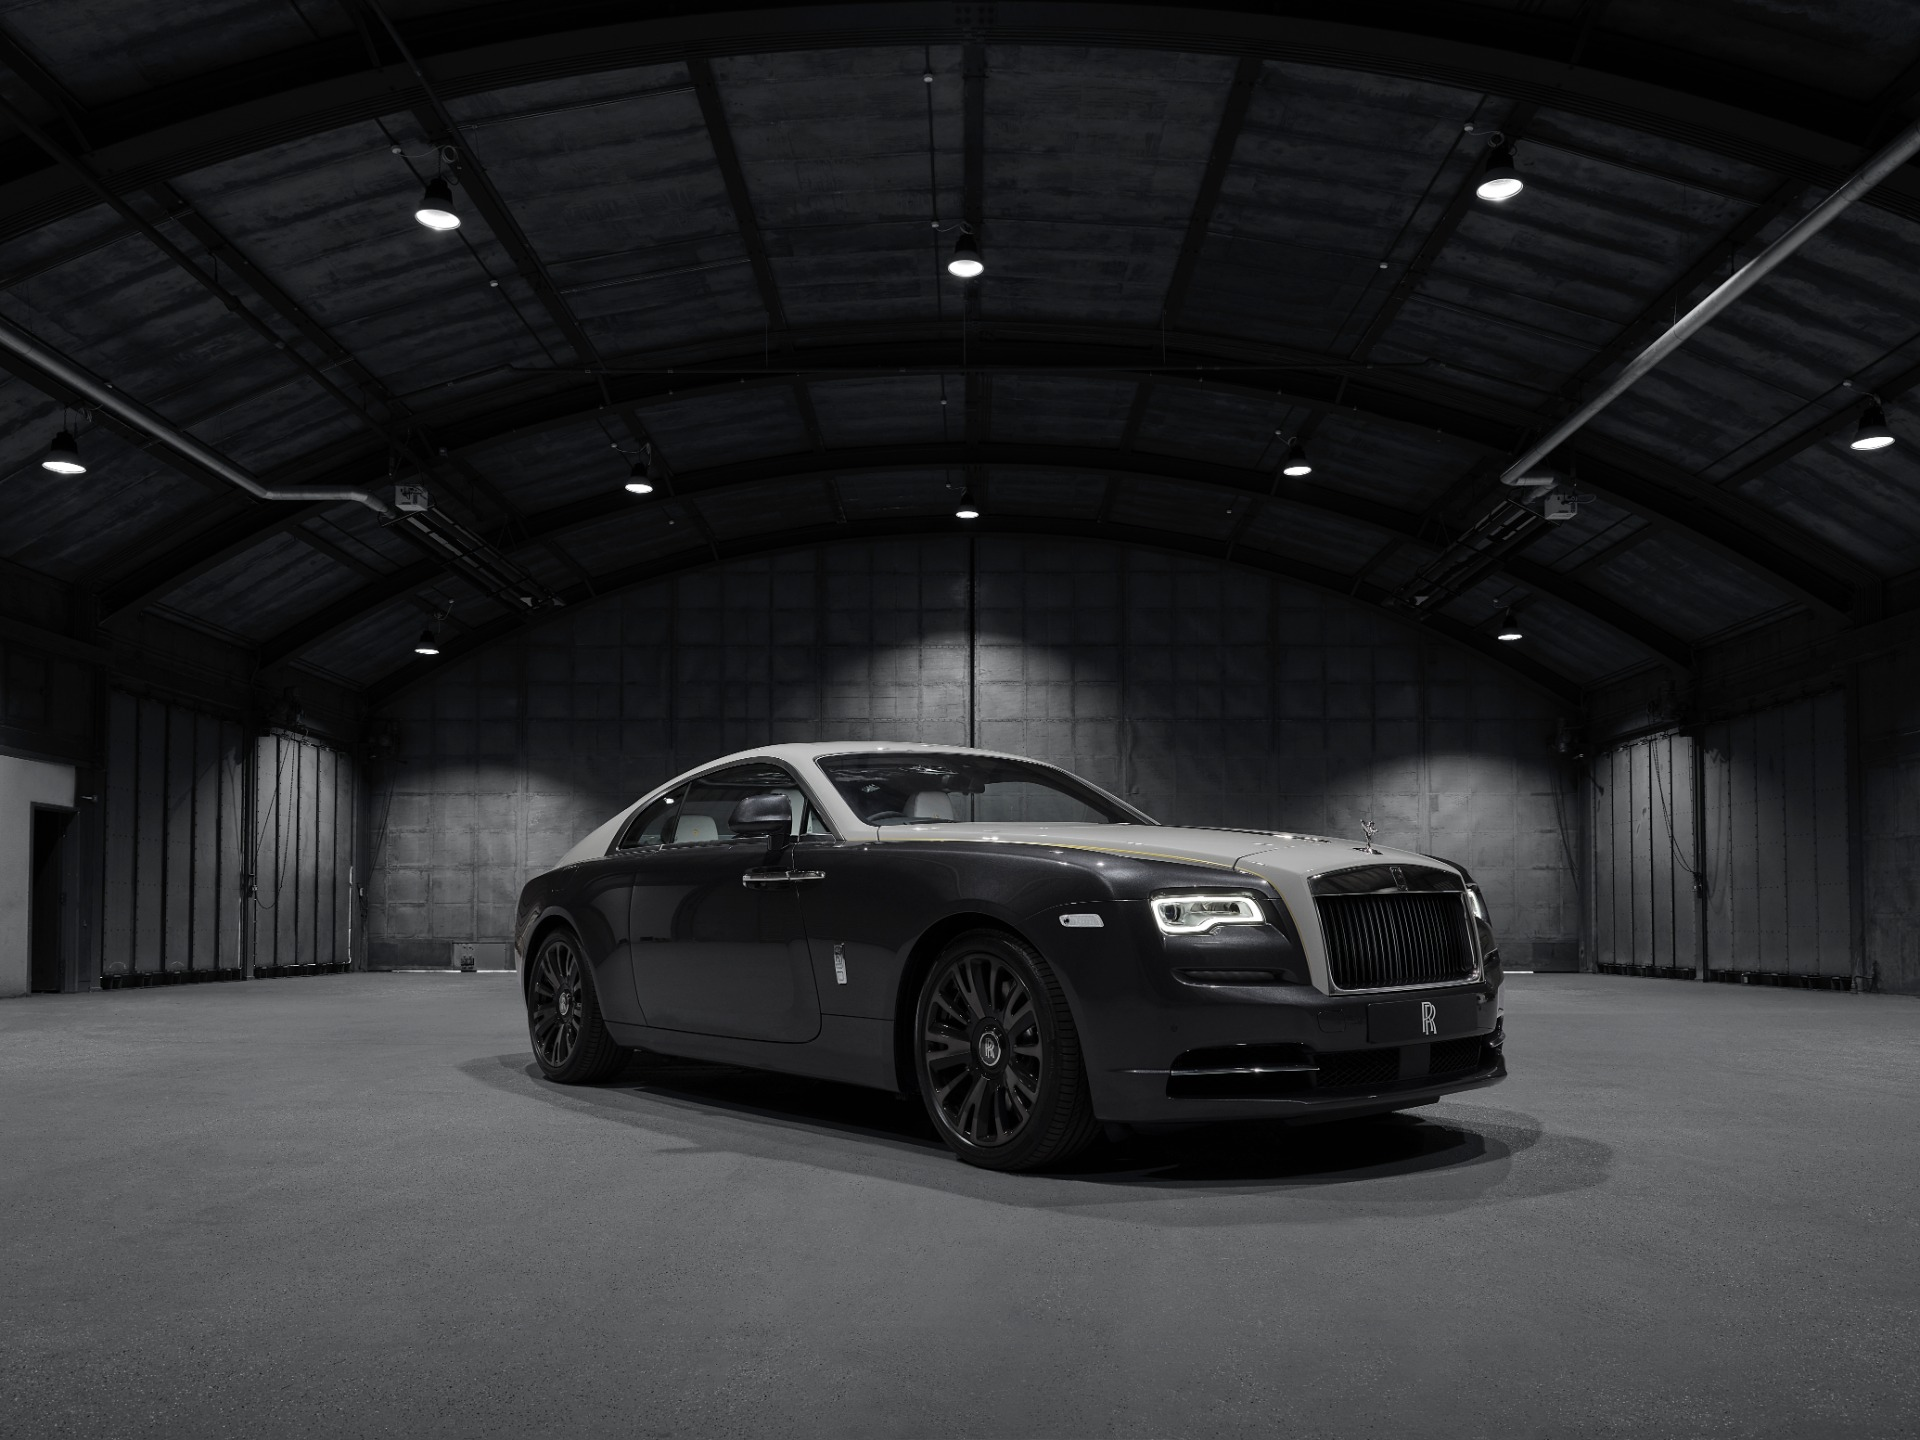 New 2020 Rolls-Royce Wraith Eagle for sale Sold at Bugatti of Greenwich in Greenwich CT 06830 1